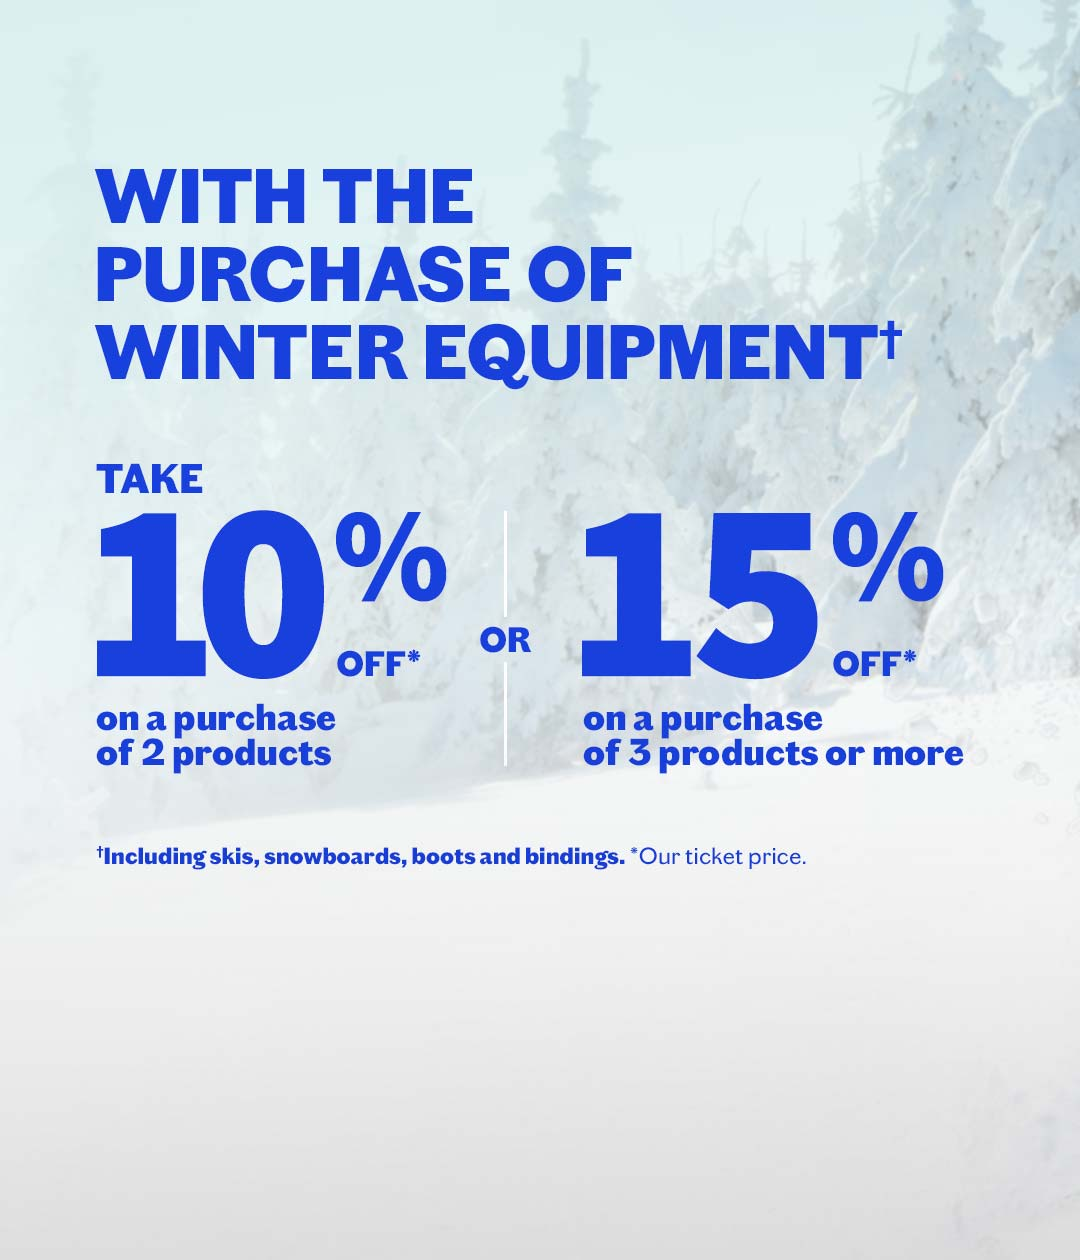 Winter Equipment Promotion ! Skis, snowboards, boots, bindings !